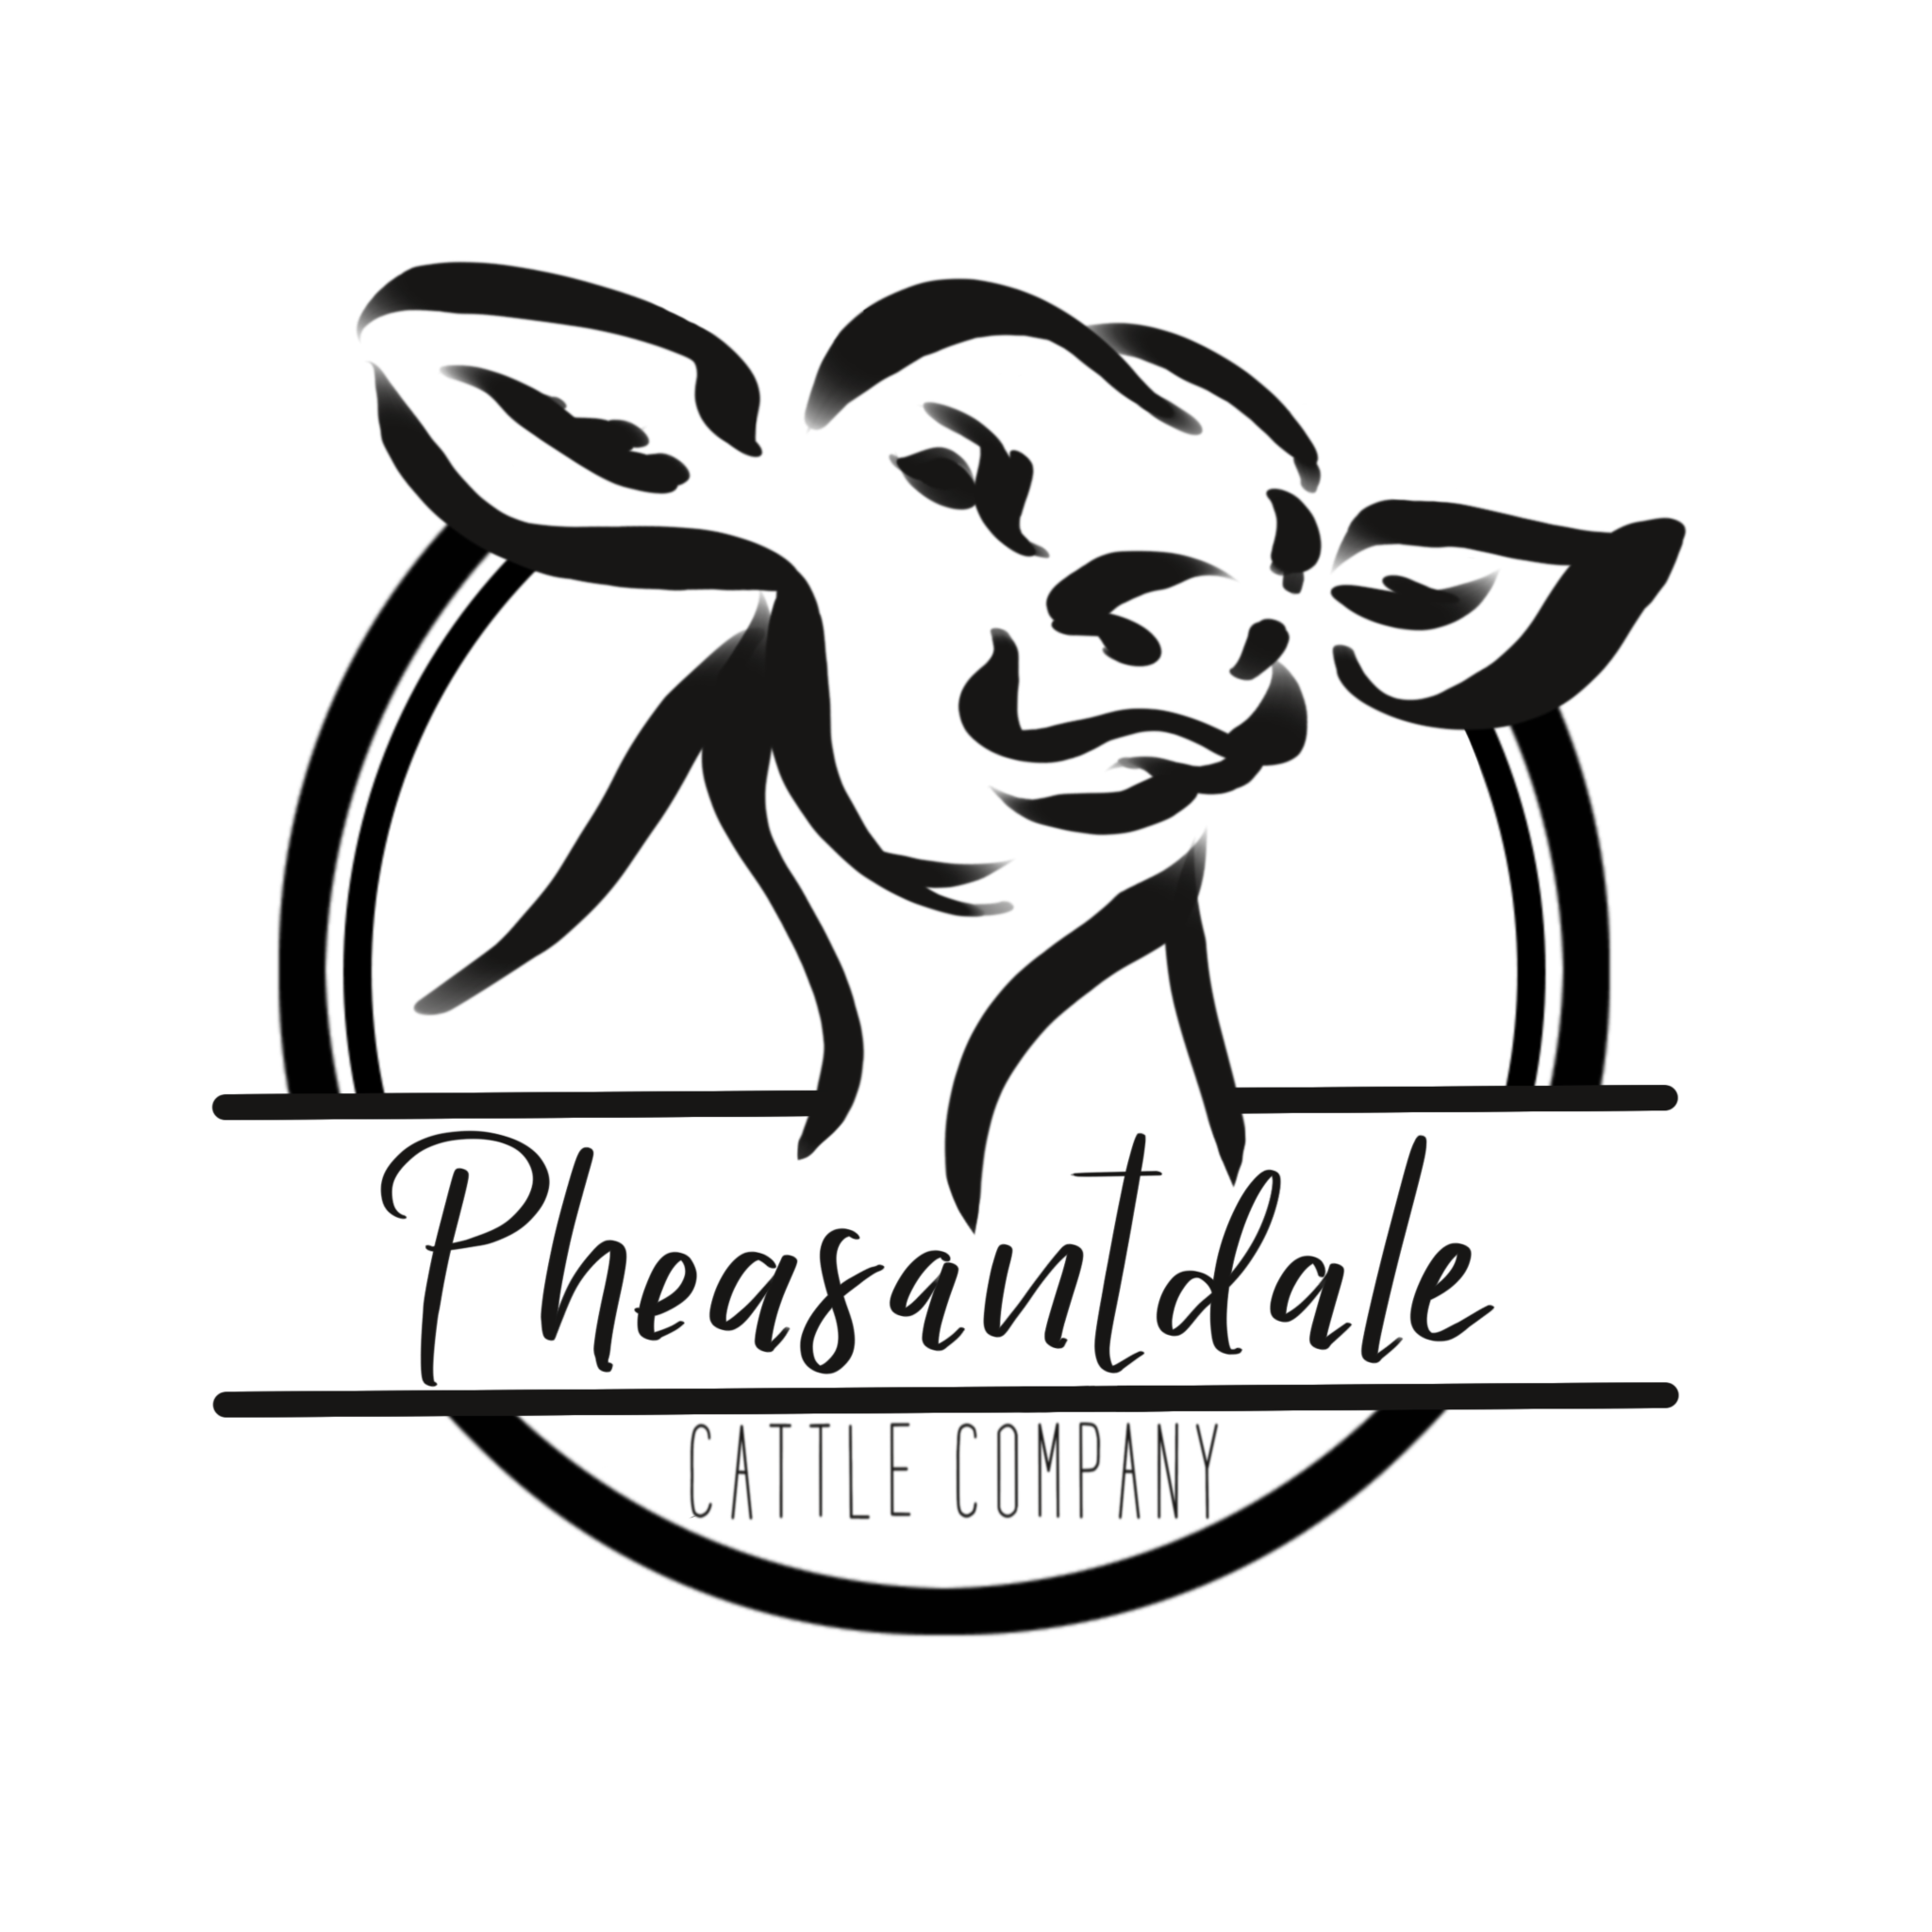 Pheasantdale Cattle Company